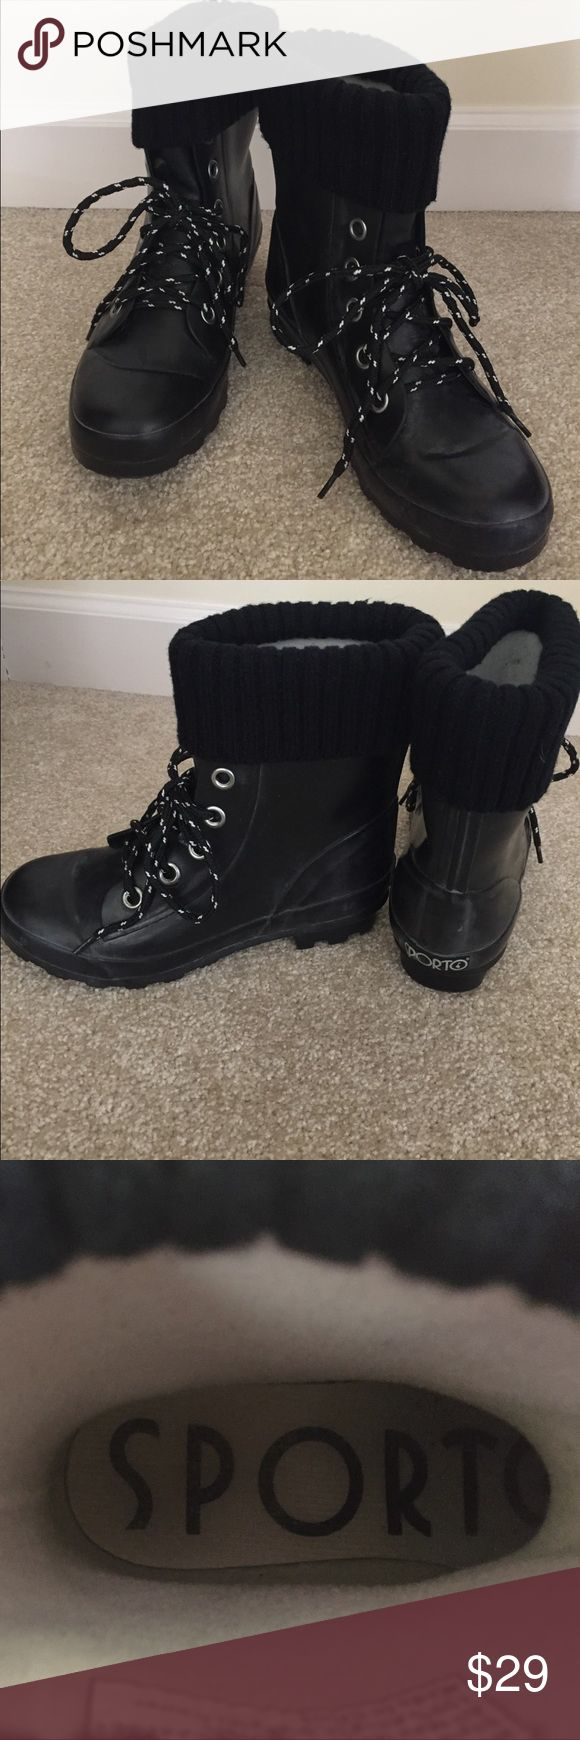 Sporto boots. Ladies Size 8. Black Sporto boots(distressed grayish finish) with sweater collar. Worn twice. Light fleece lining. Good stay dry boot. Size 8. Very roomy size 8, as with most Sporto products. Sporto Shoes Winter & Rain Boots